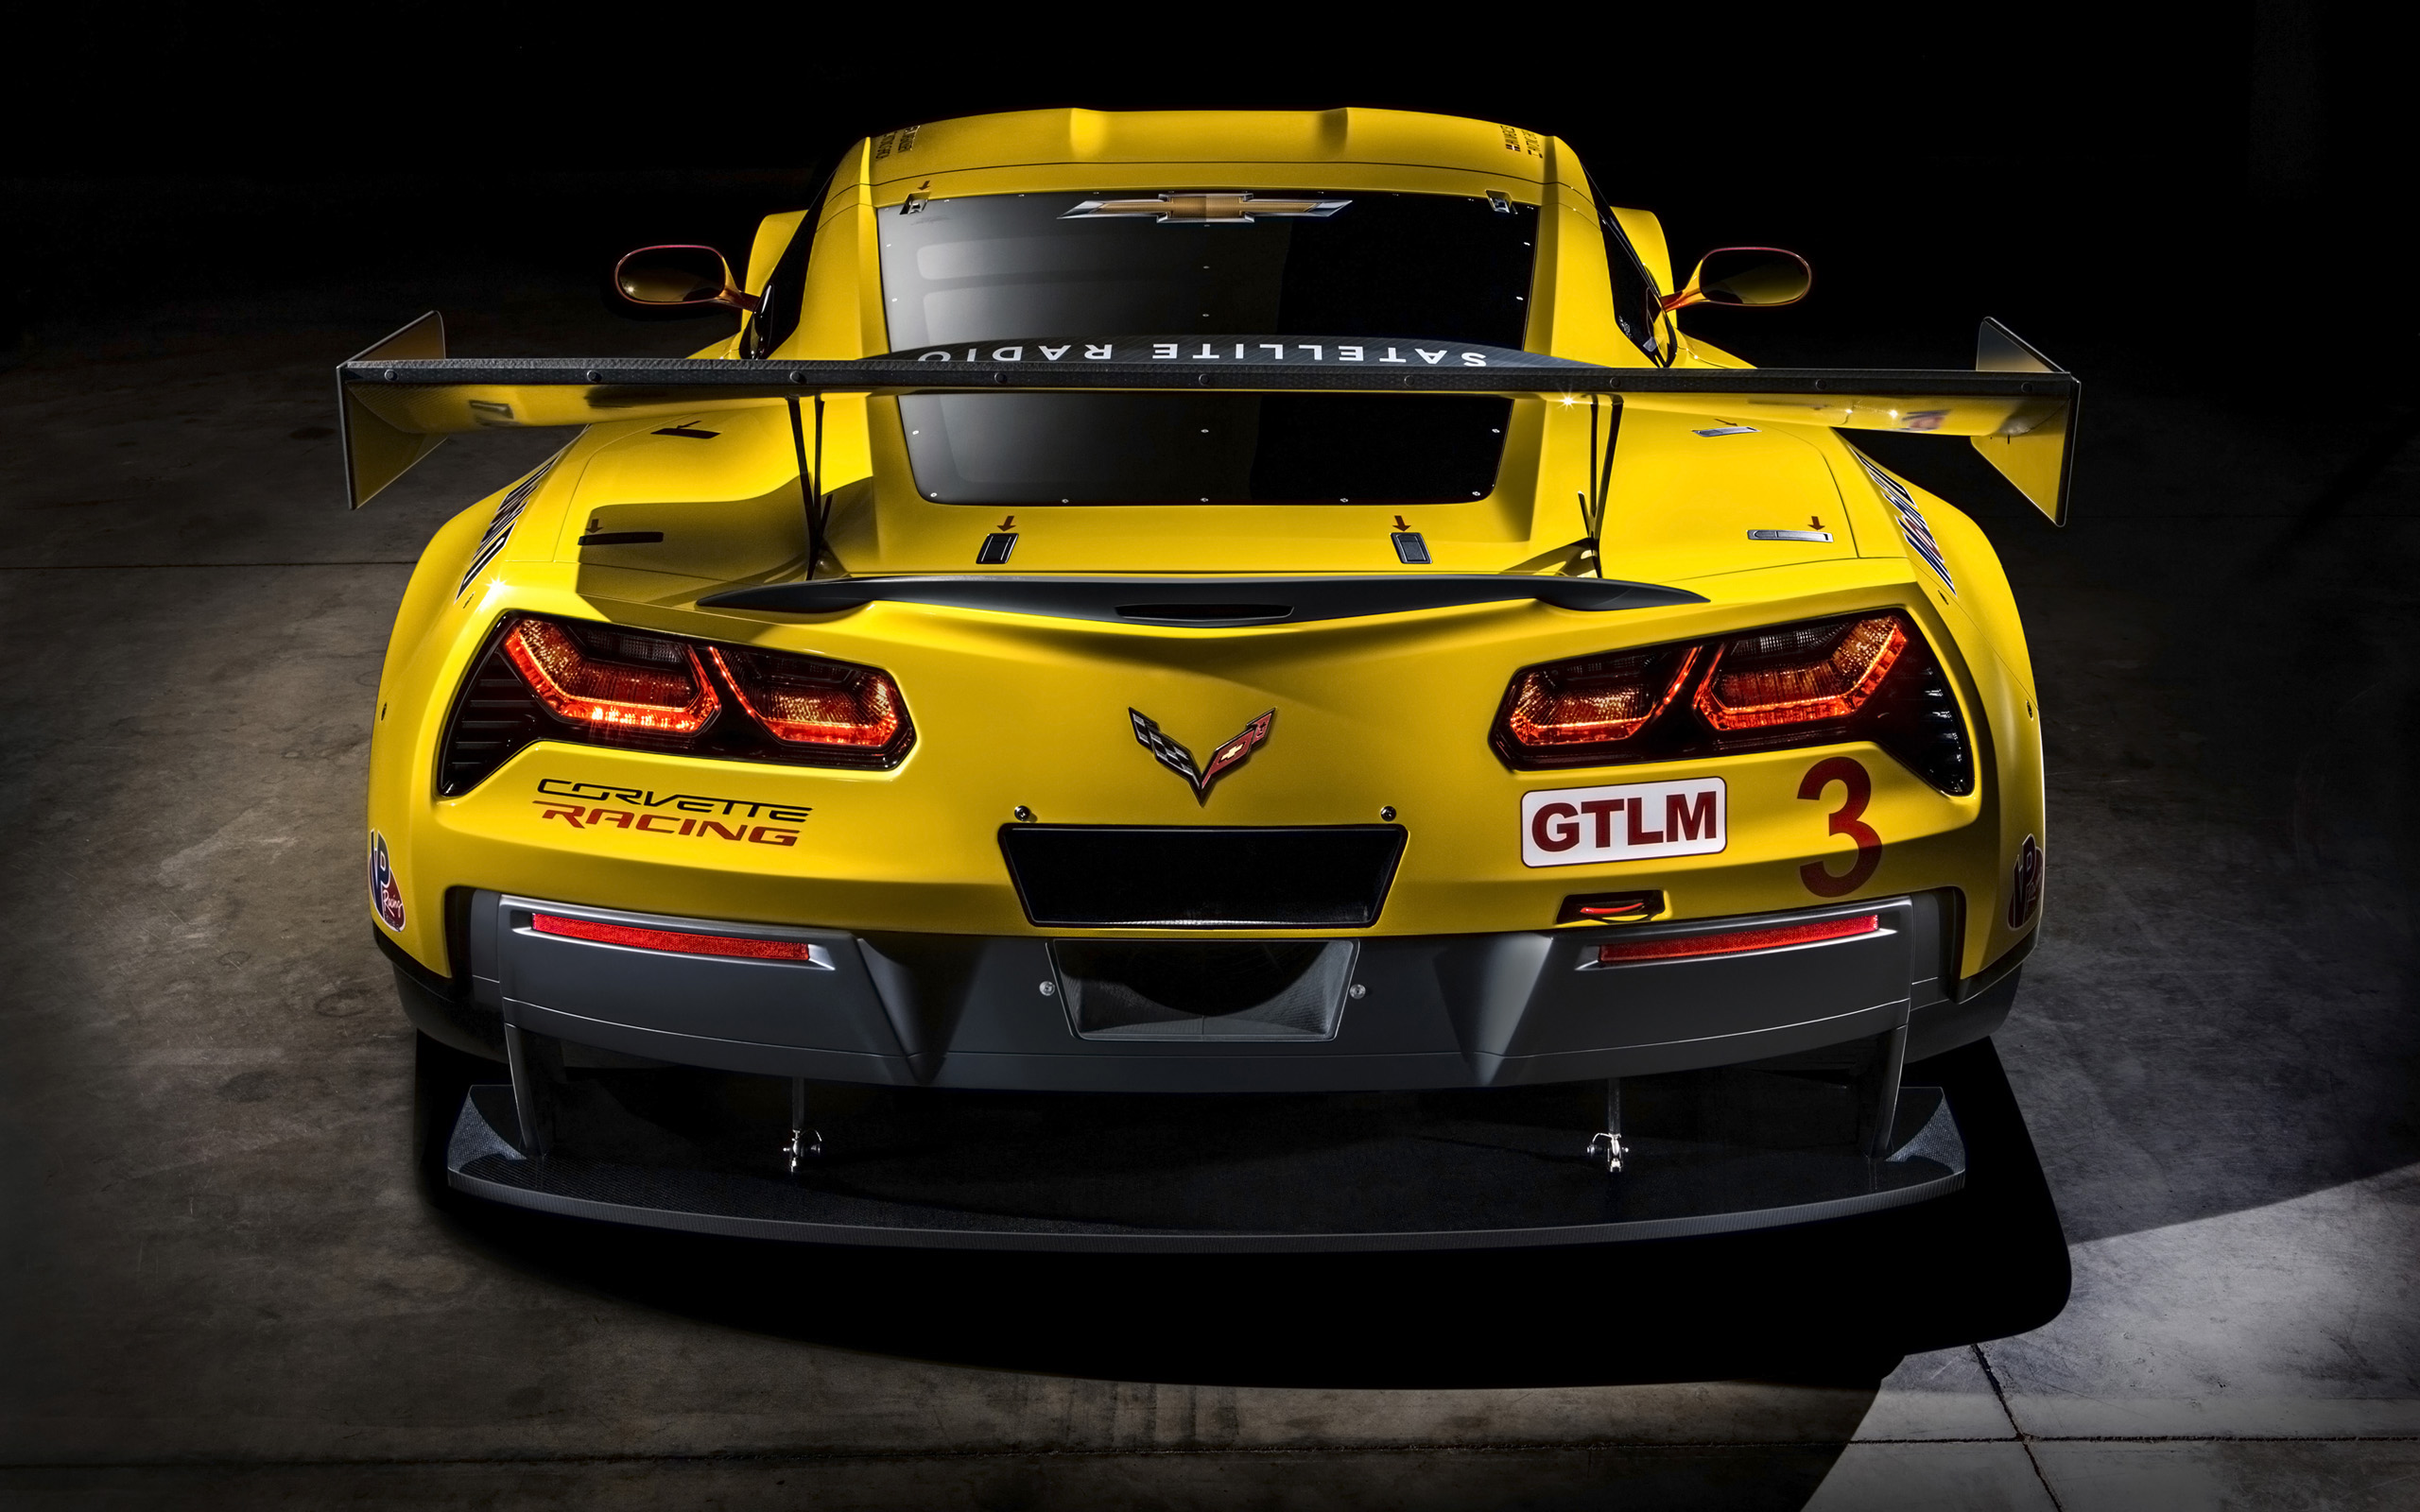 Chevrolet Corvette C7 R 2014 2 Wallpaper | HD Car Wallpapers